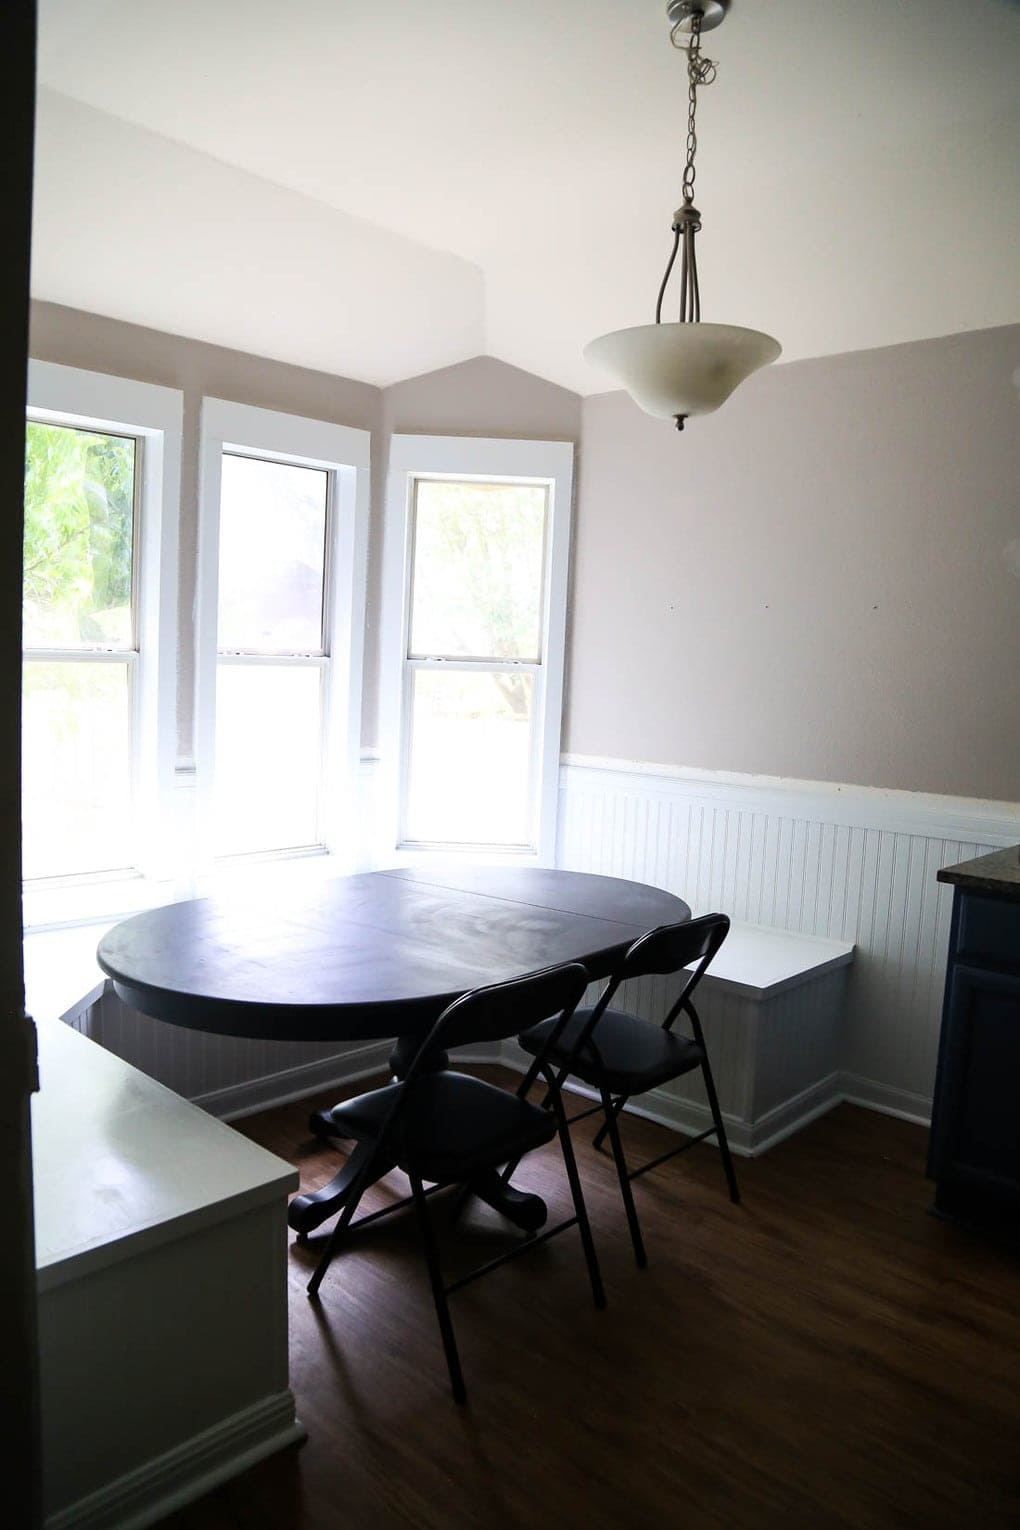 Banquette and beadboard in dining room